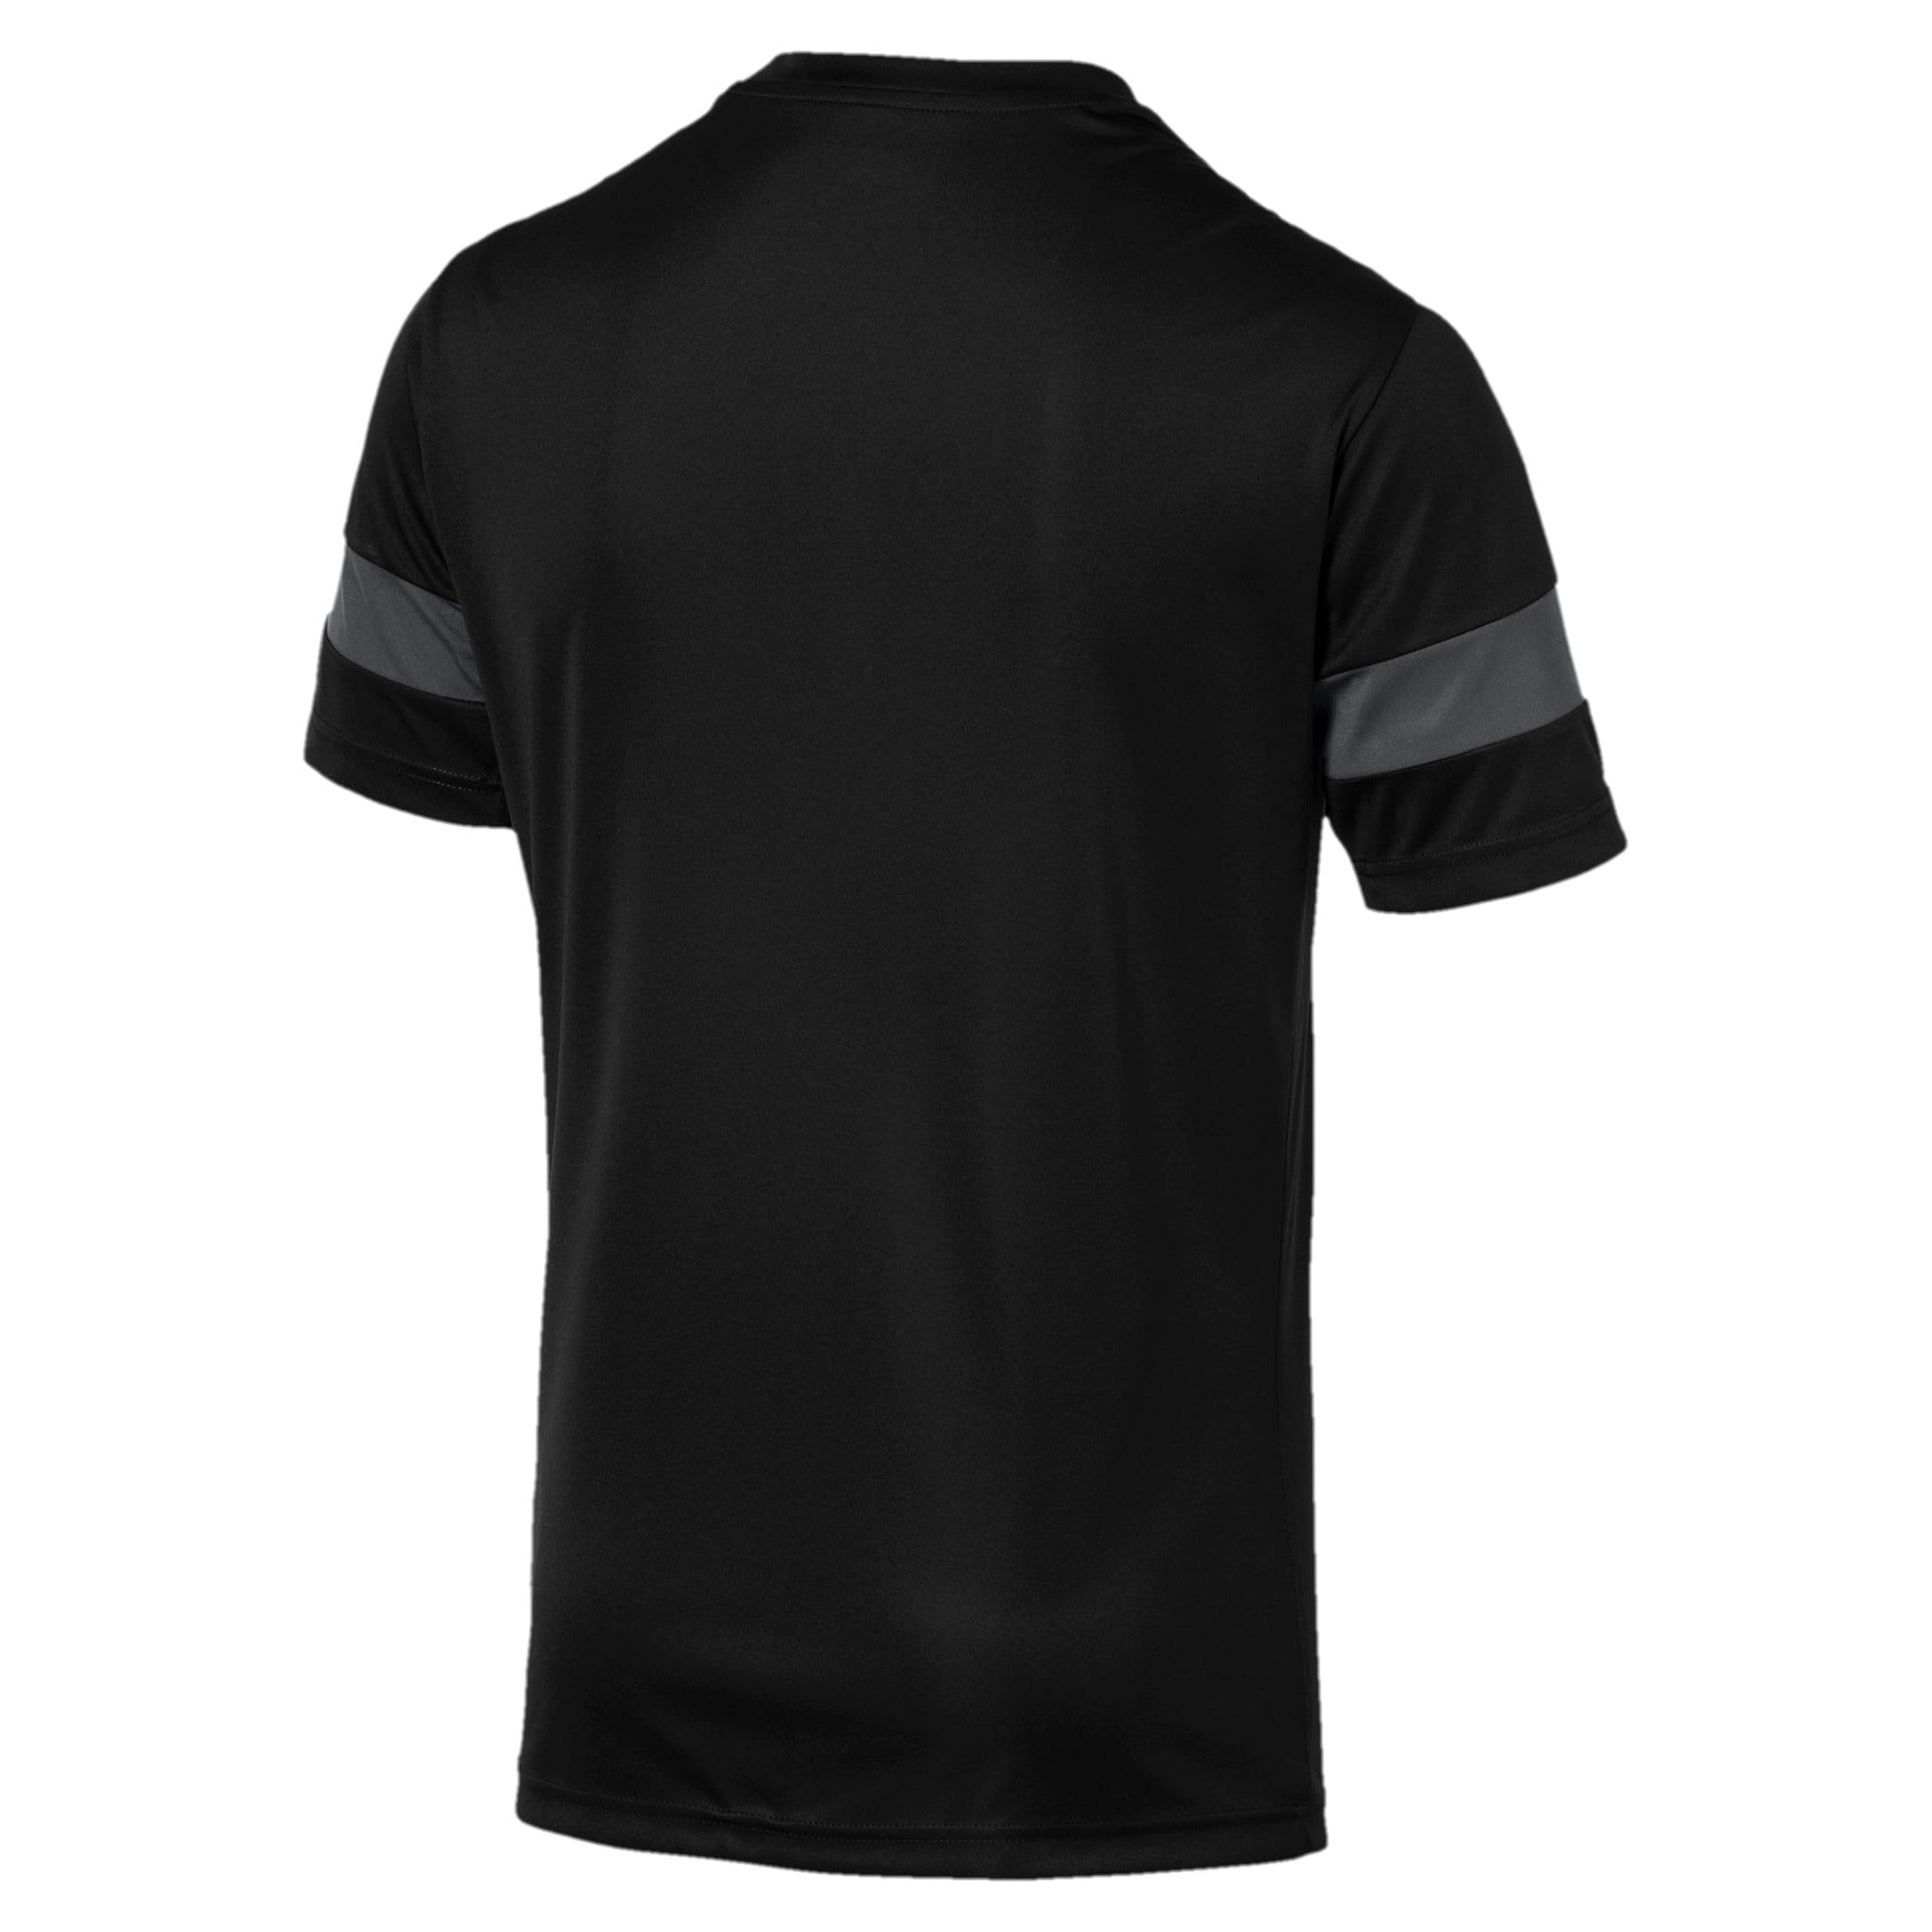 Thumbnail 5 of Herren Trainingsshirt, Puma Black-Asphalt, medium